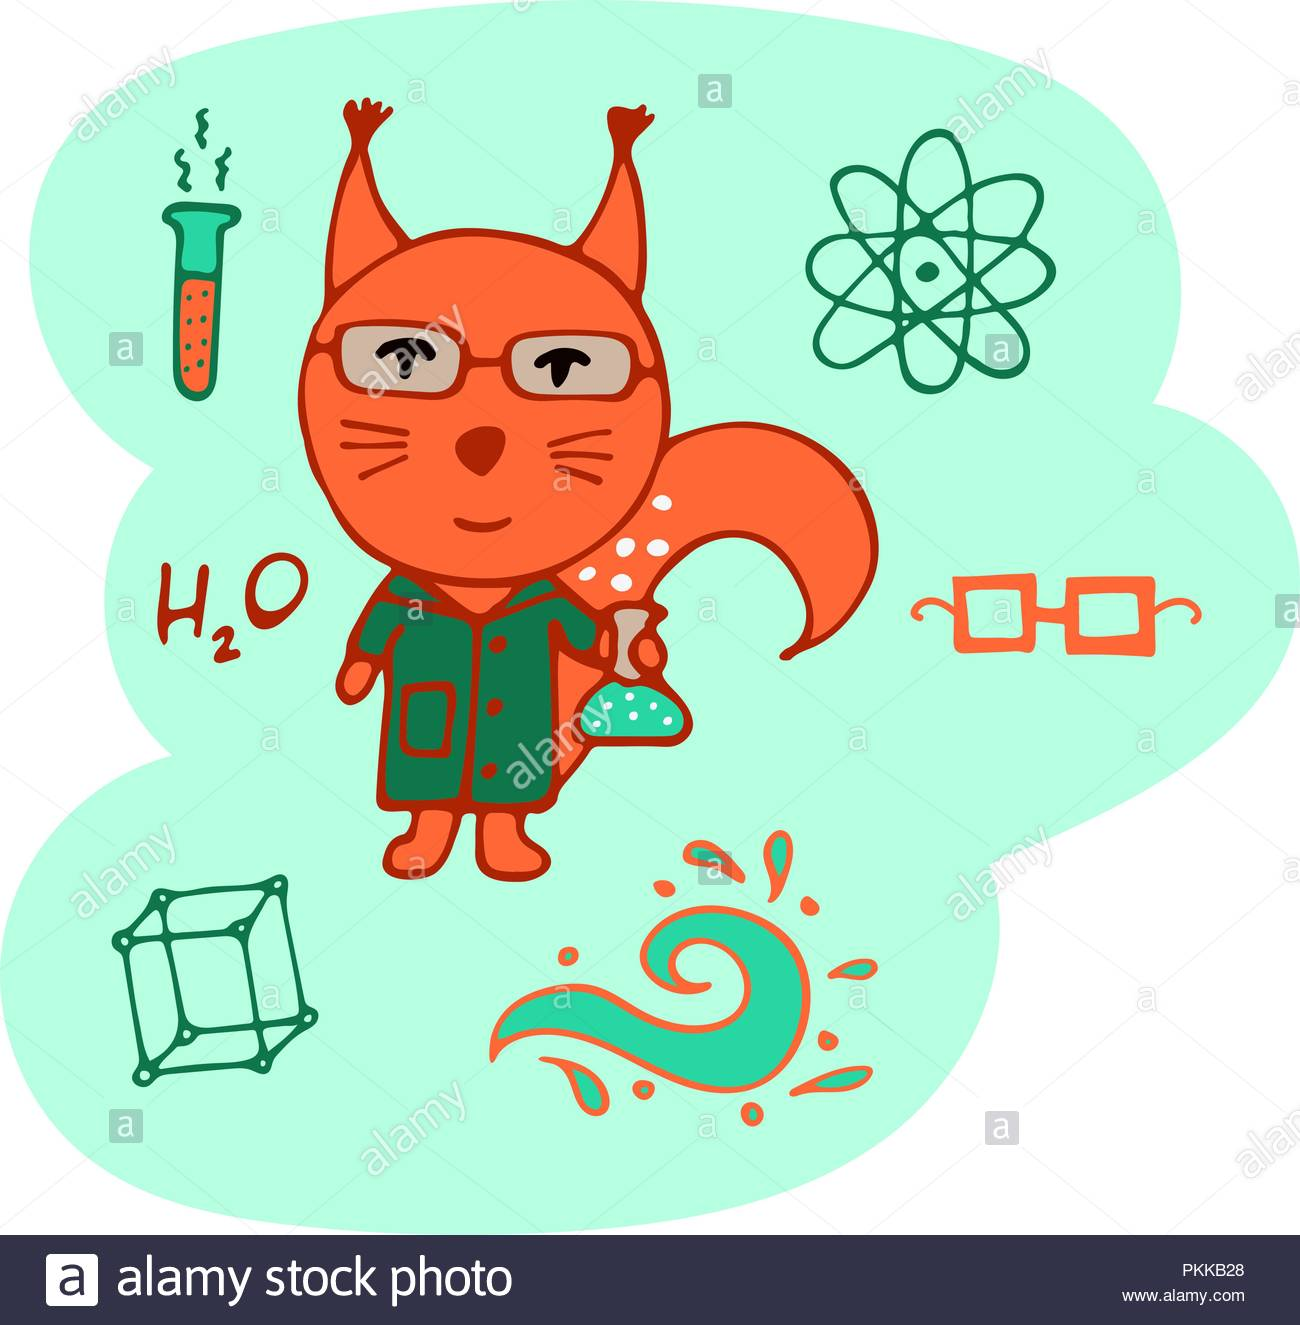 Hand-drawn clever squirrel the chemist with a test tube and wearing spectacles. - Stock Vector